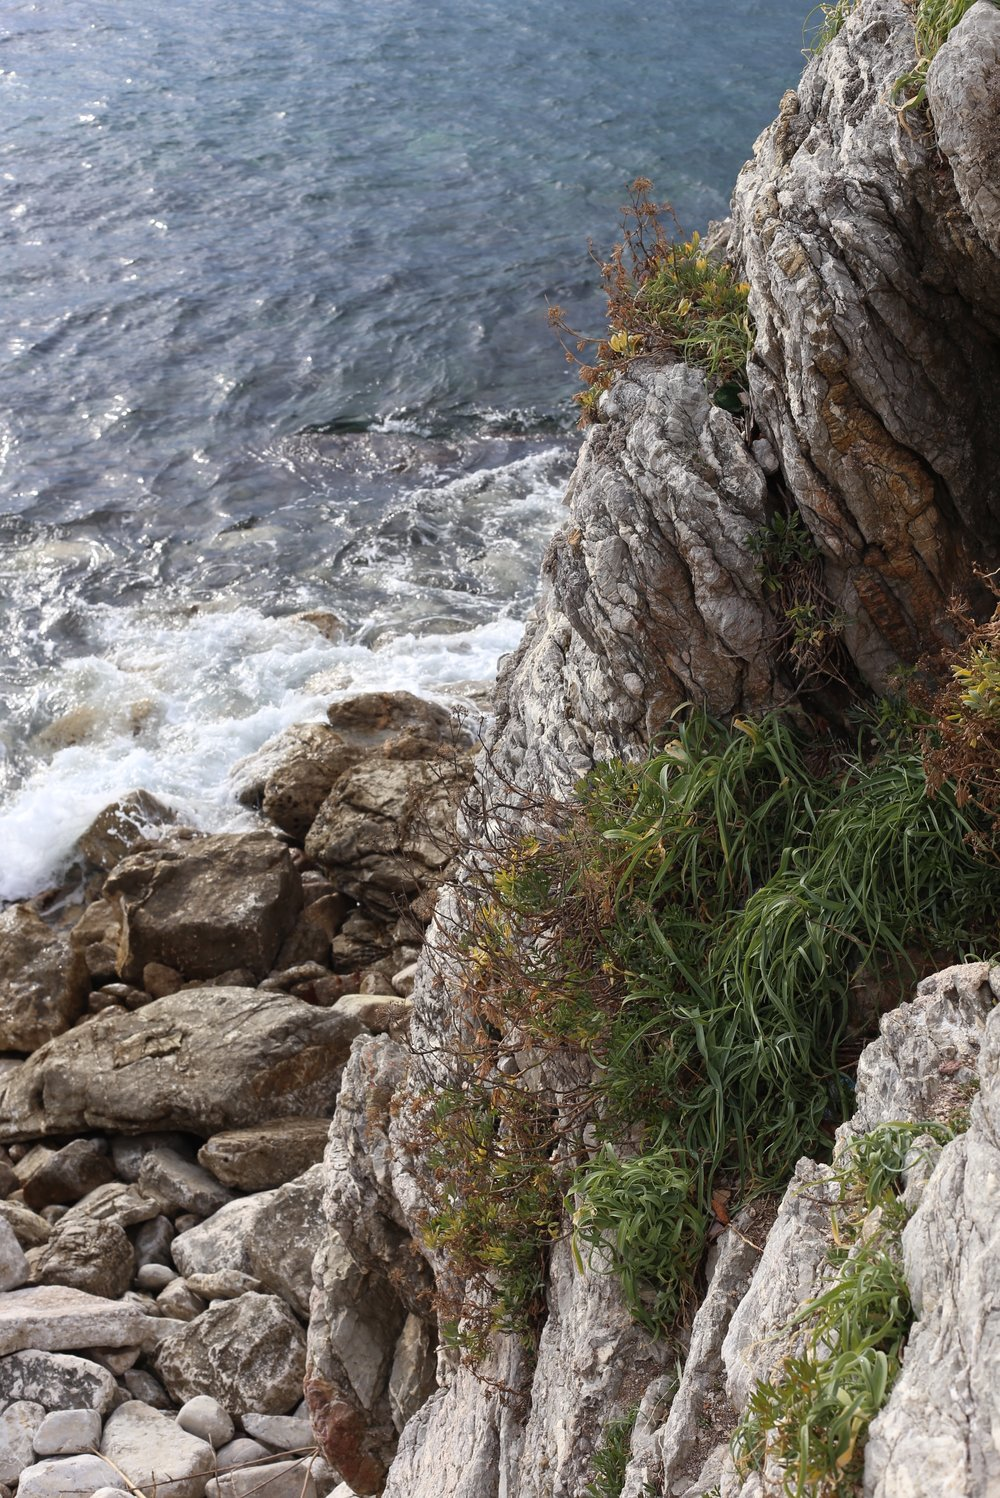 Rocks and plants by the shores of Montenegro